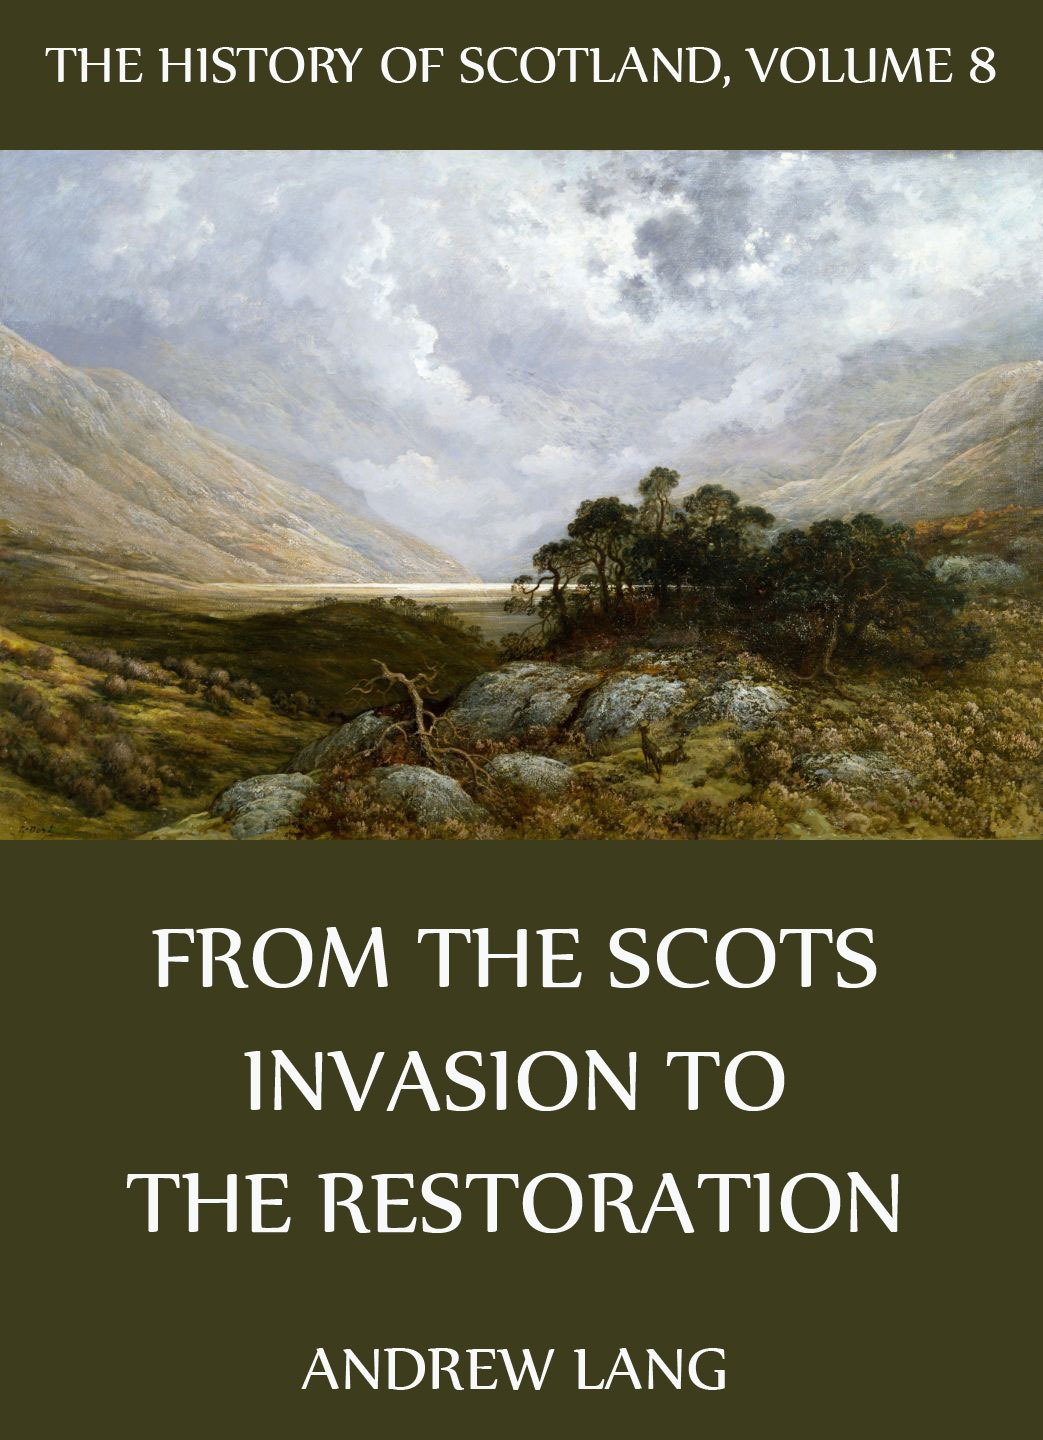 Фото - Andrew Lang The History Of Scotland - Volume 8: From The Scots Invasion To The Restoration m guizot history of richard cromwell and the restoration of charles ii volume 2